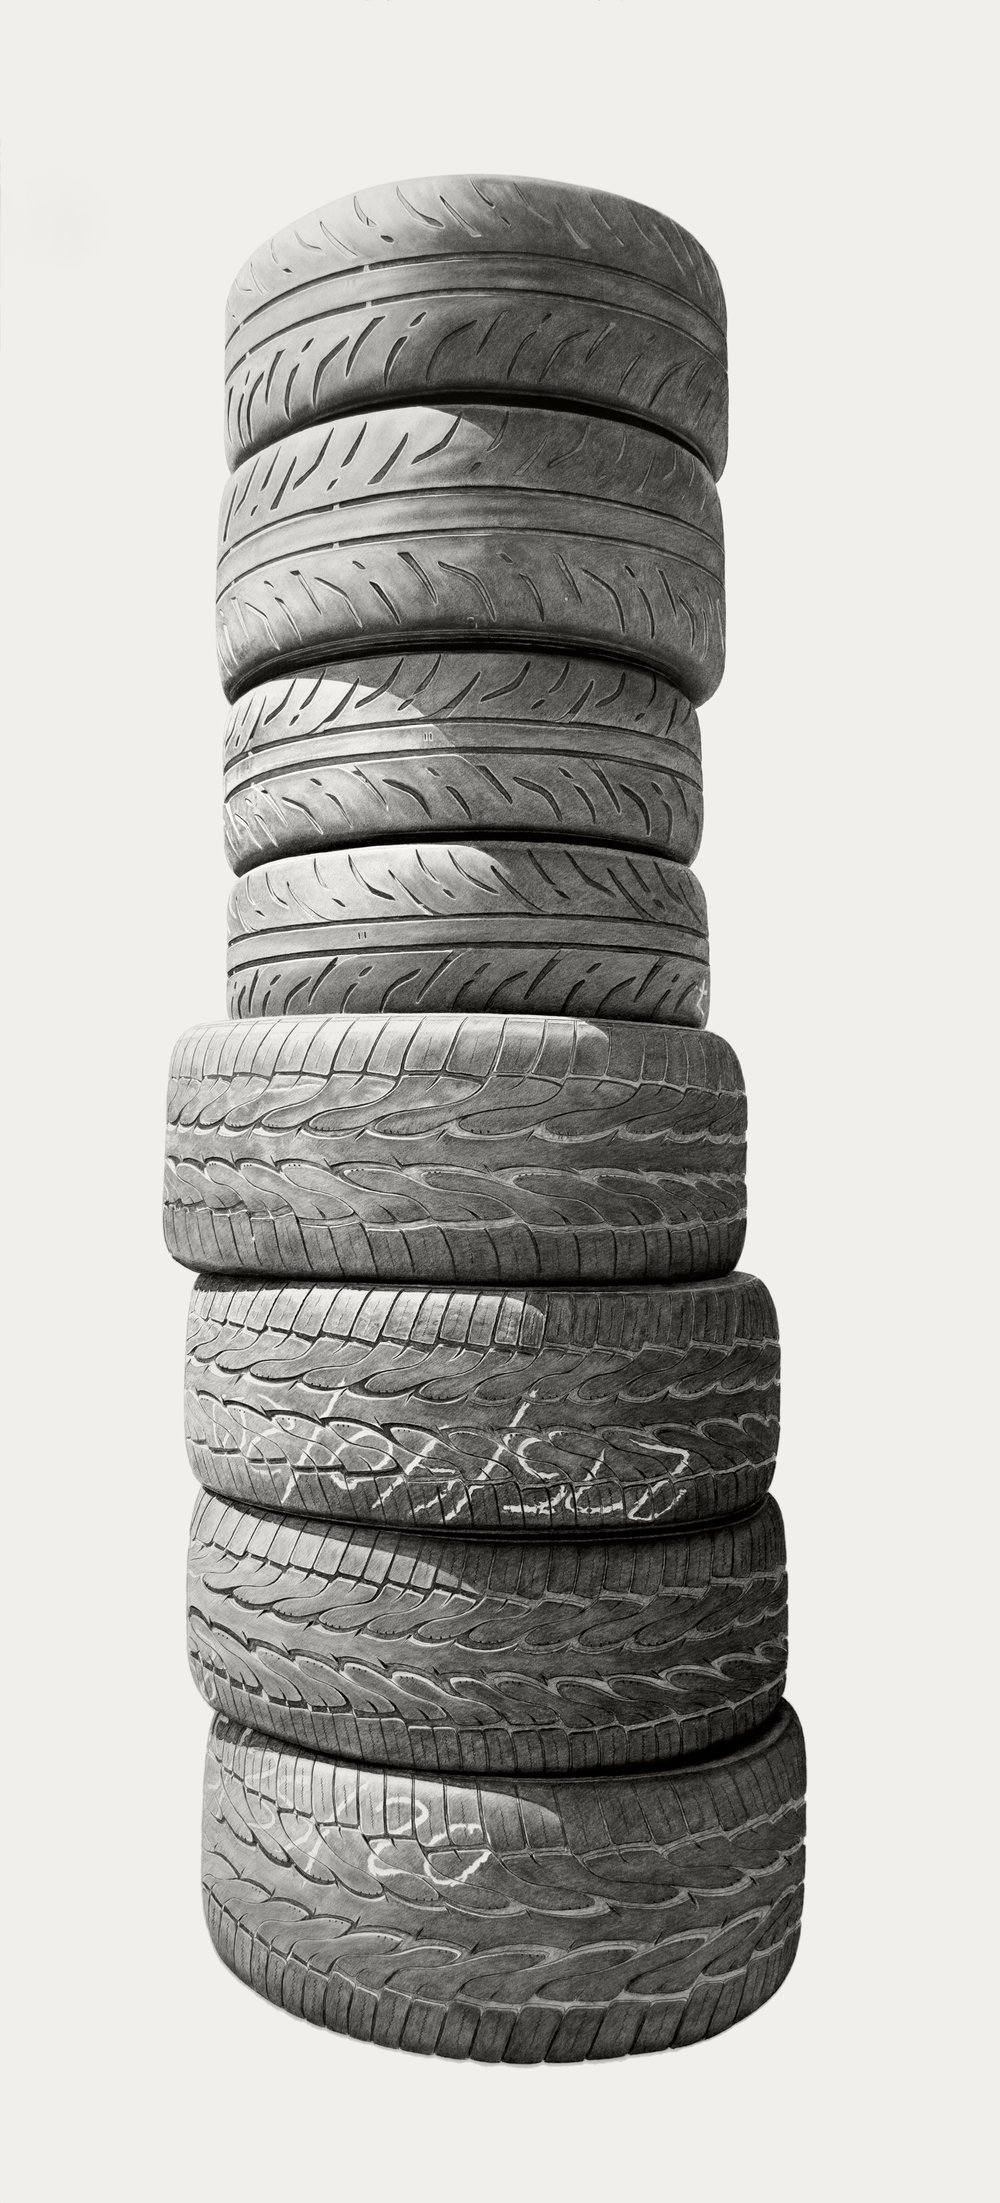 Neighborhood Still Life #4 (Tires)